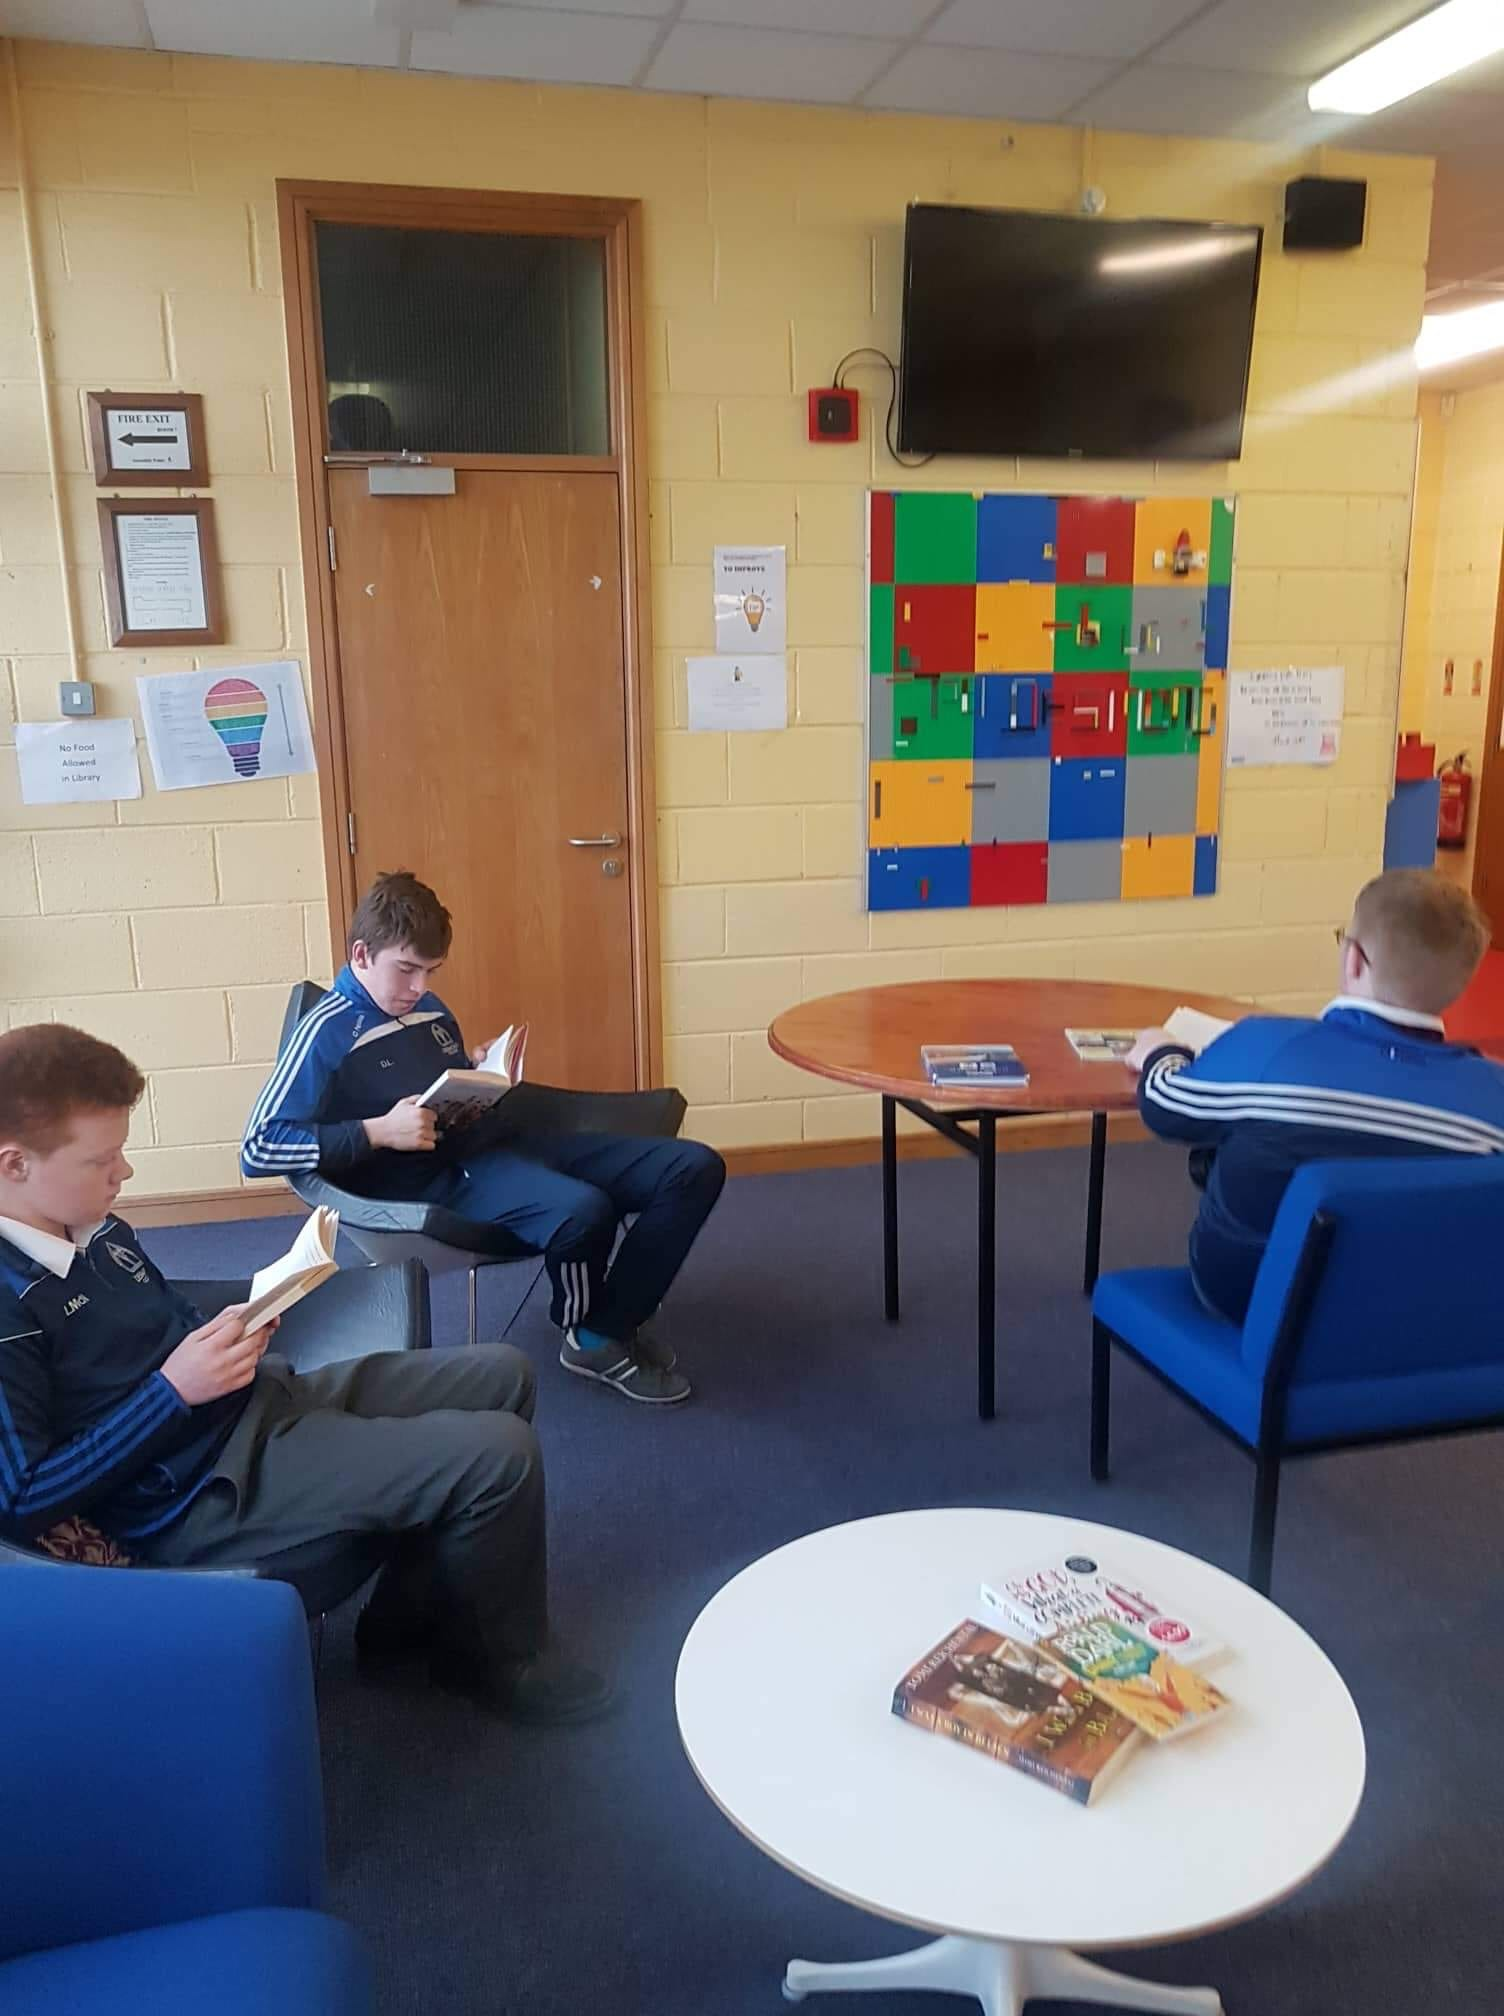 Students from Rang Grandin visiting the School Library as part of World Book Day 2019